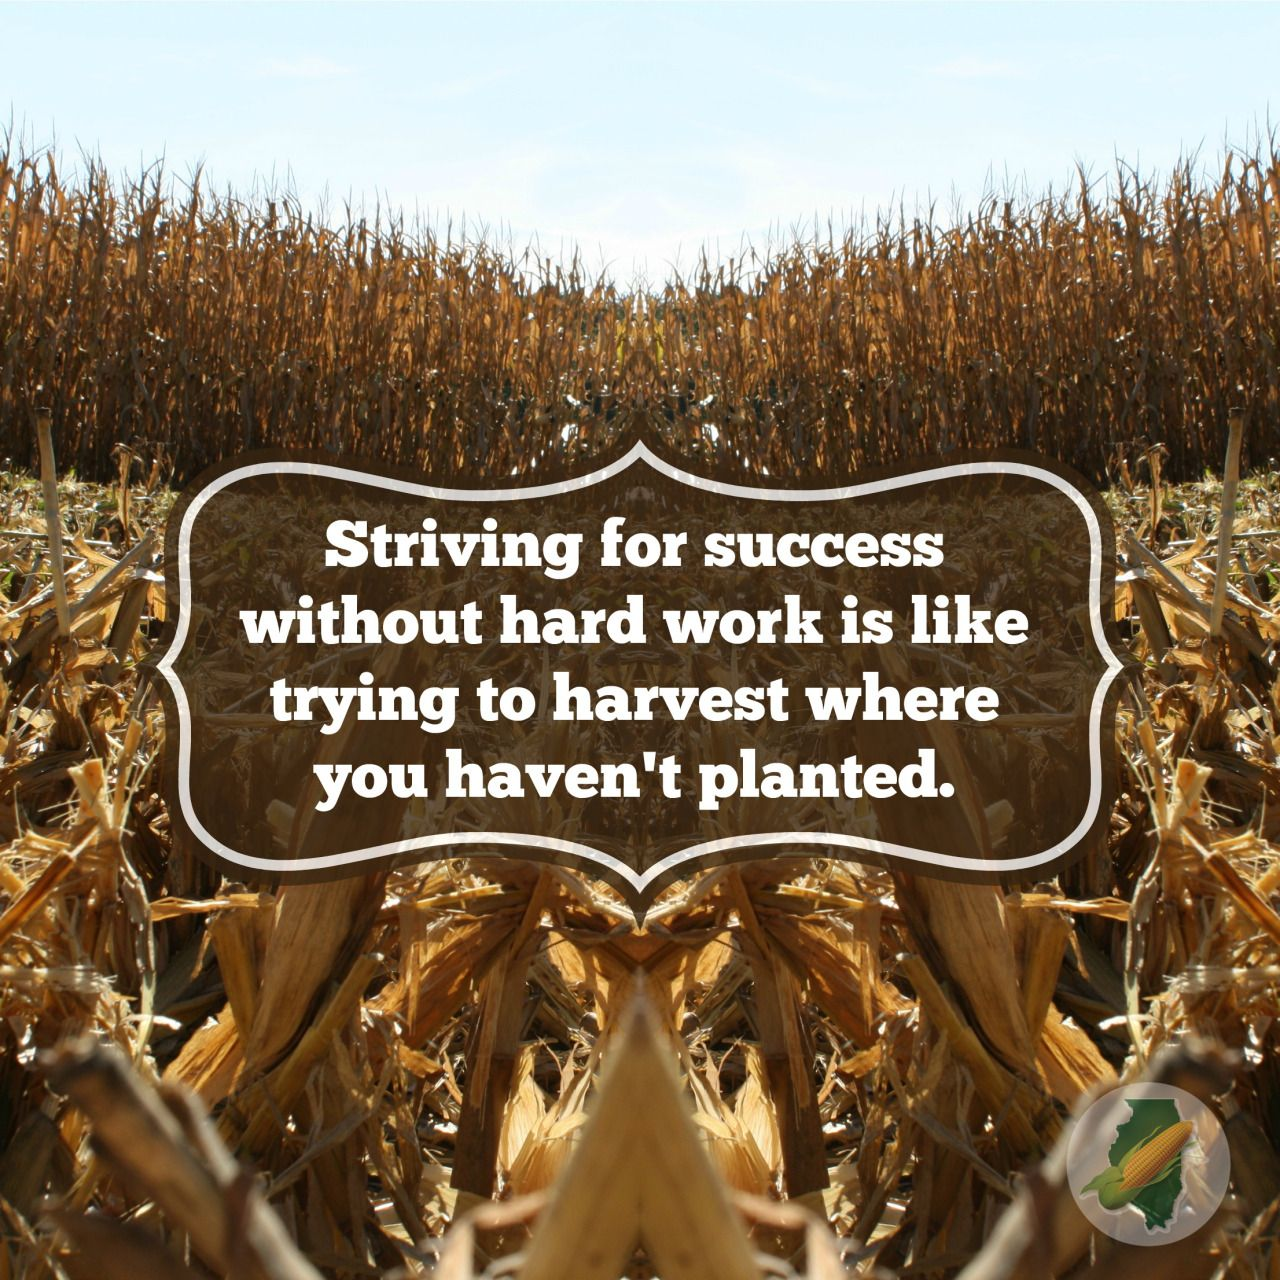 Success Without Hard Work Agriculture Quotes Farm Quotes Farm Life Quotes